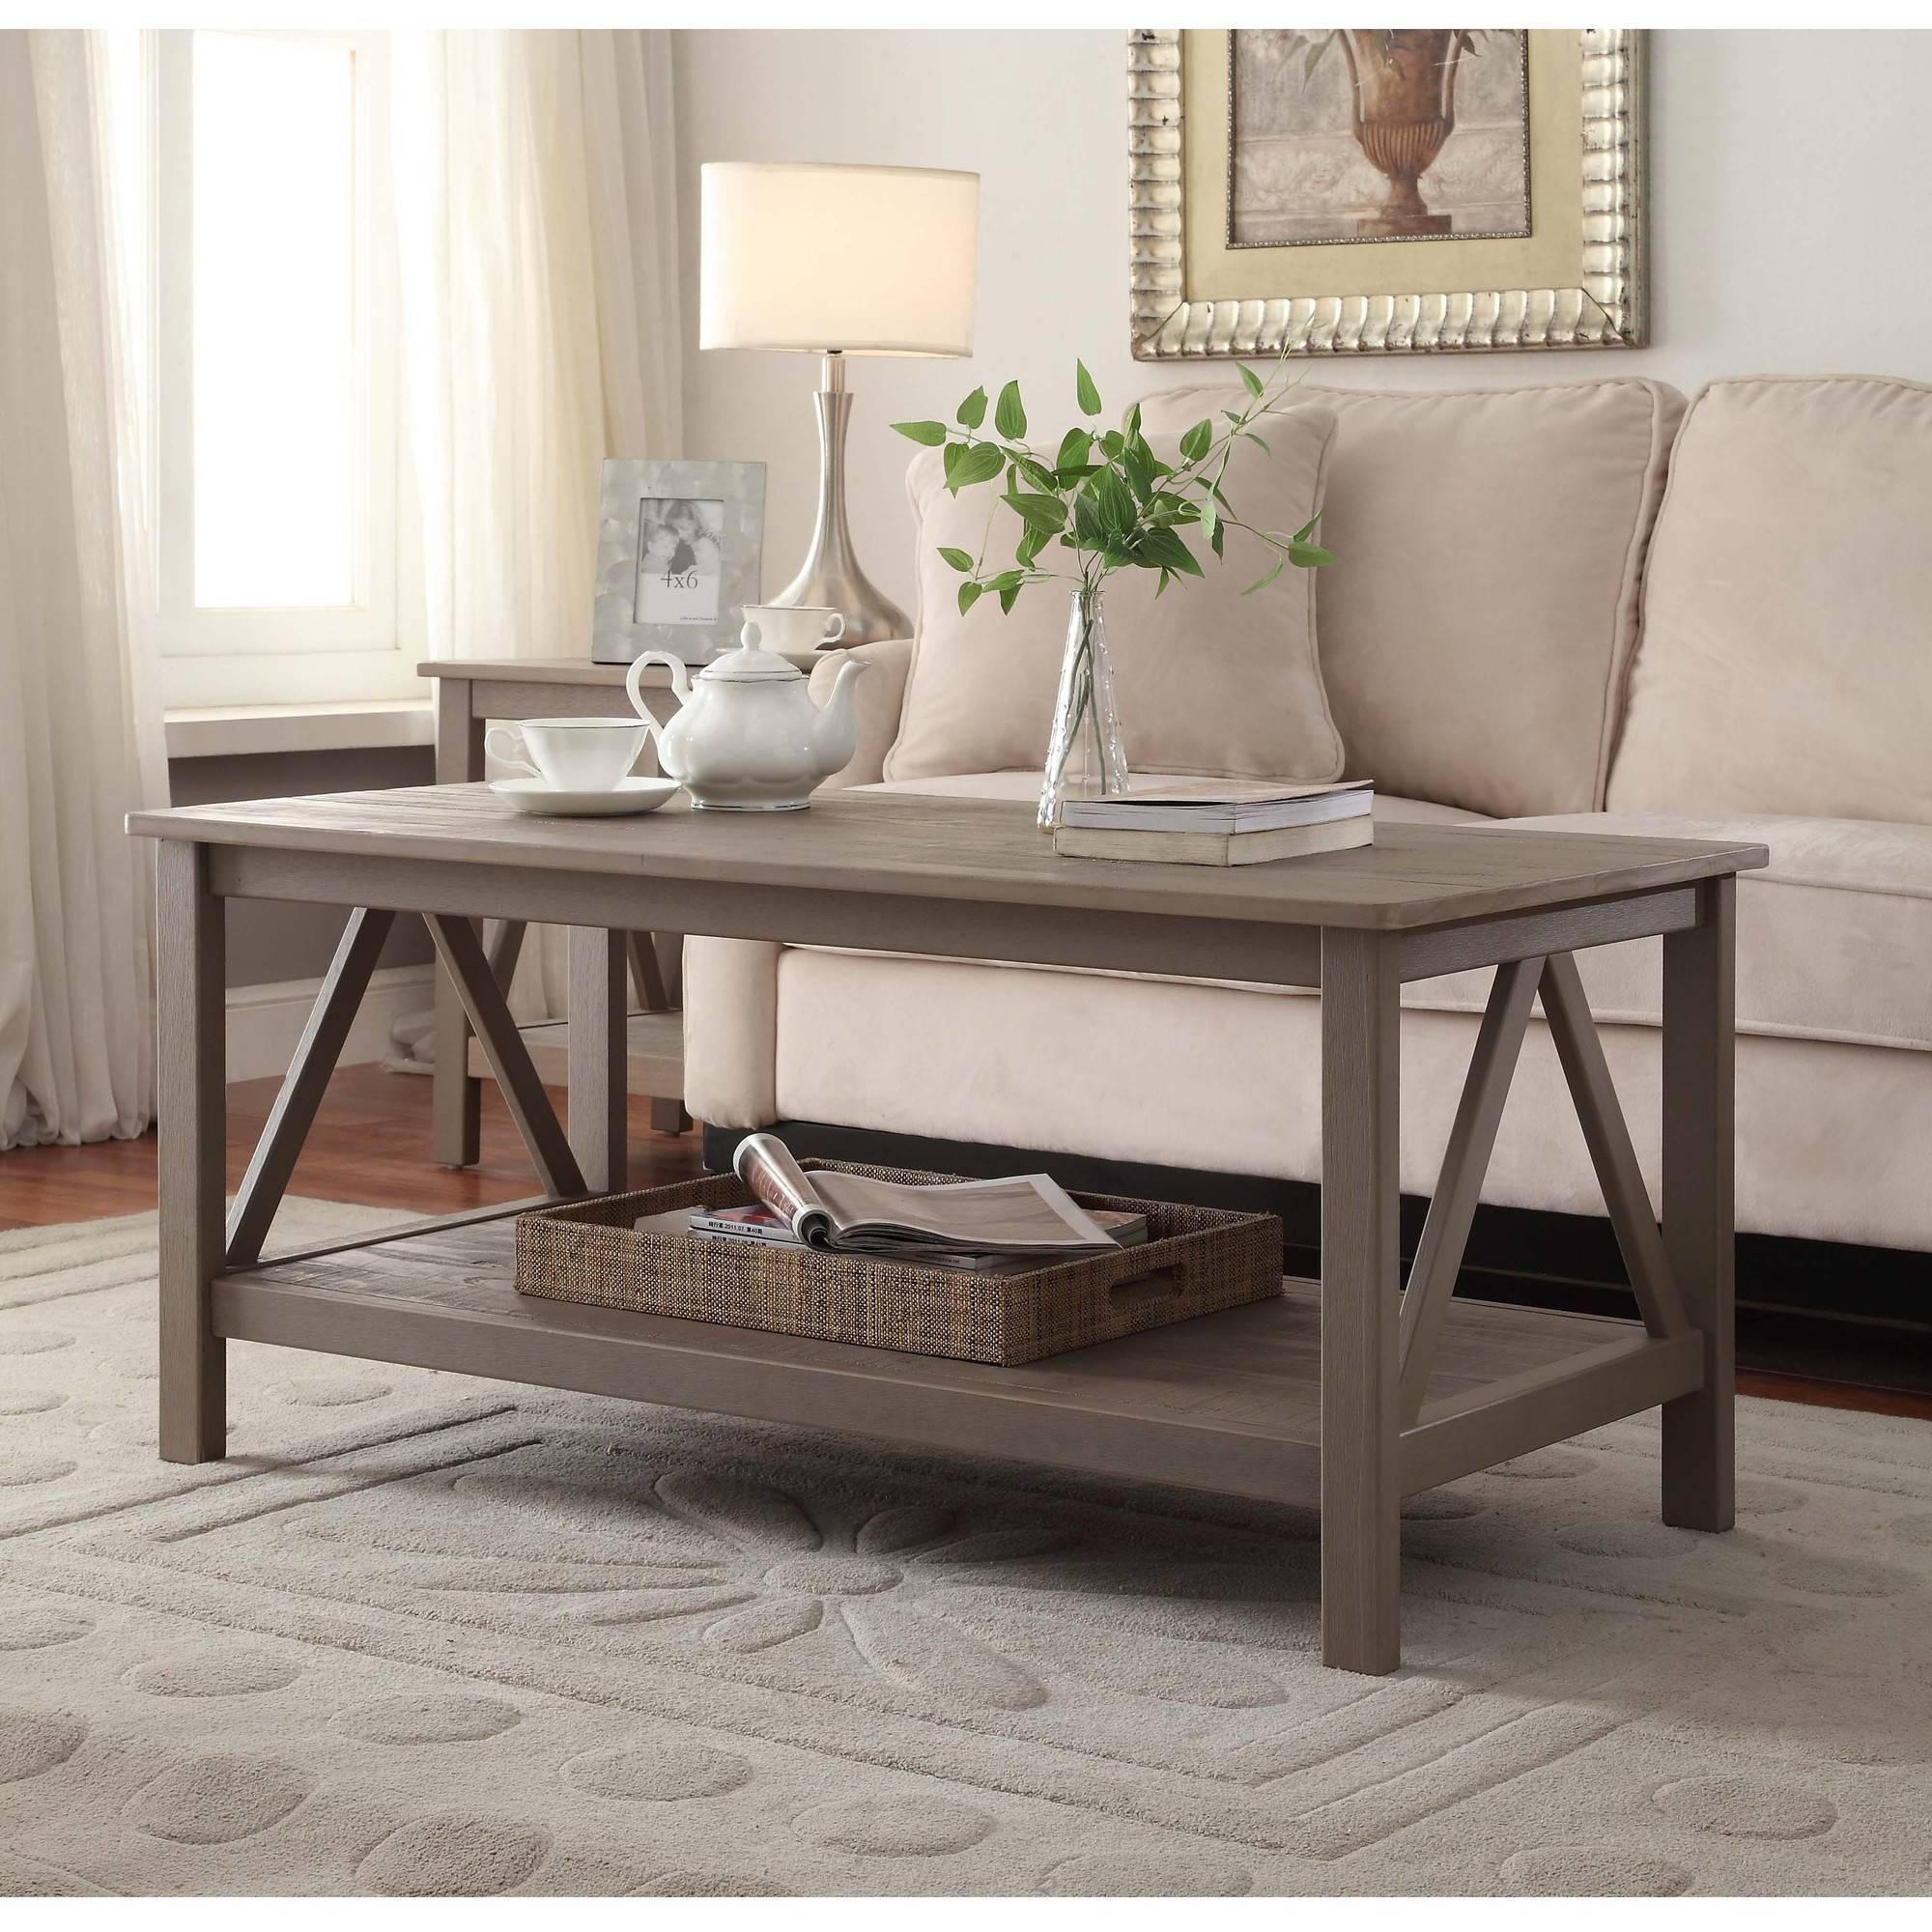 Linon Titian Coffee Table, Rustic Gray - Walmart with Grey Coffee Tables (Image 25 of 30)